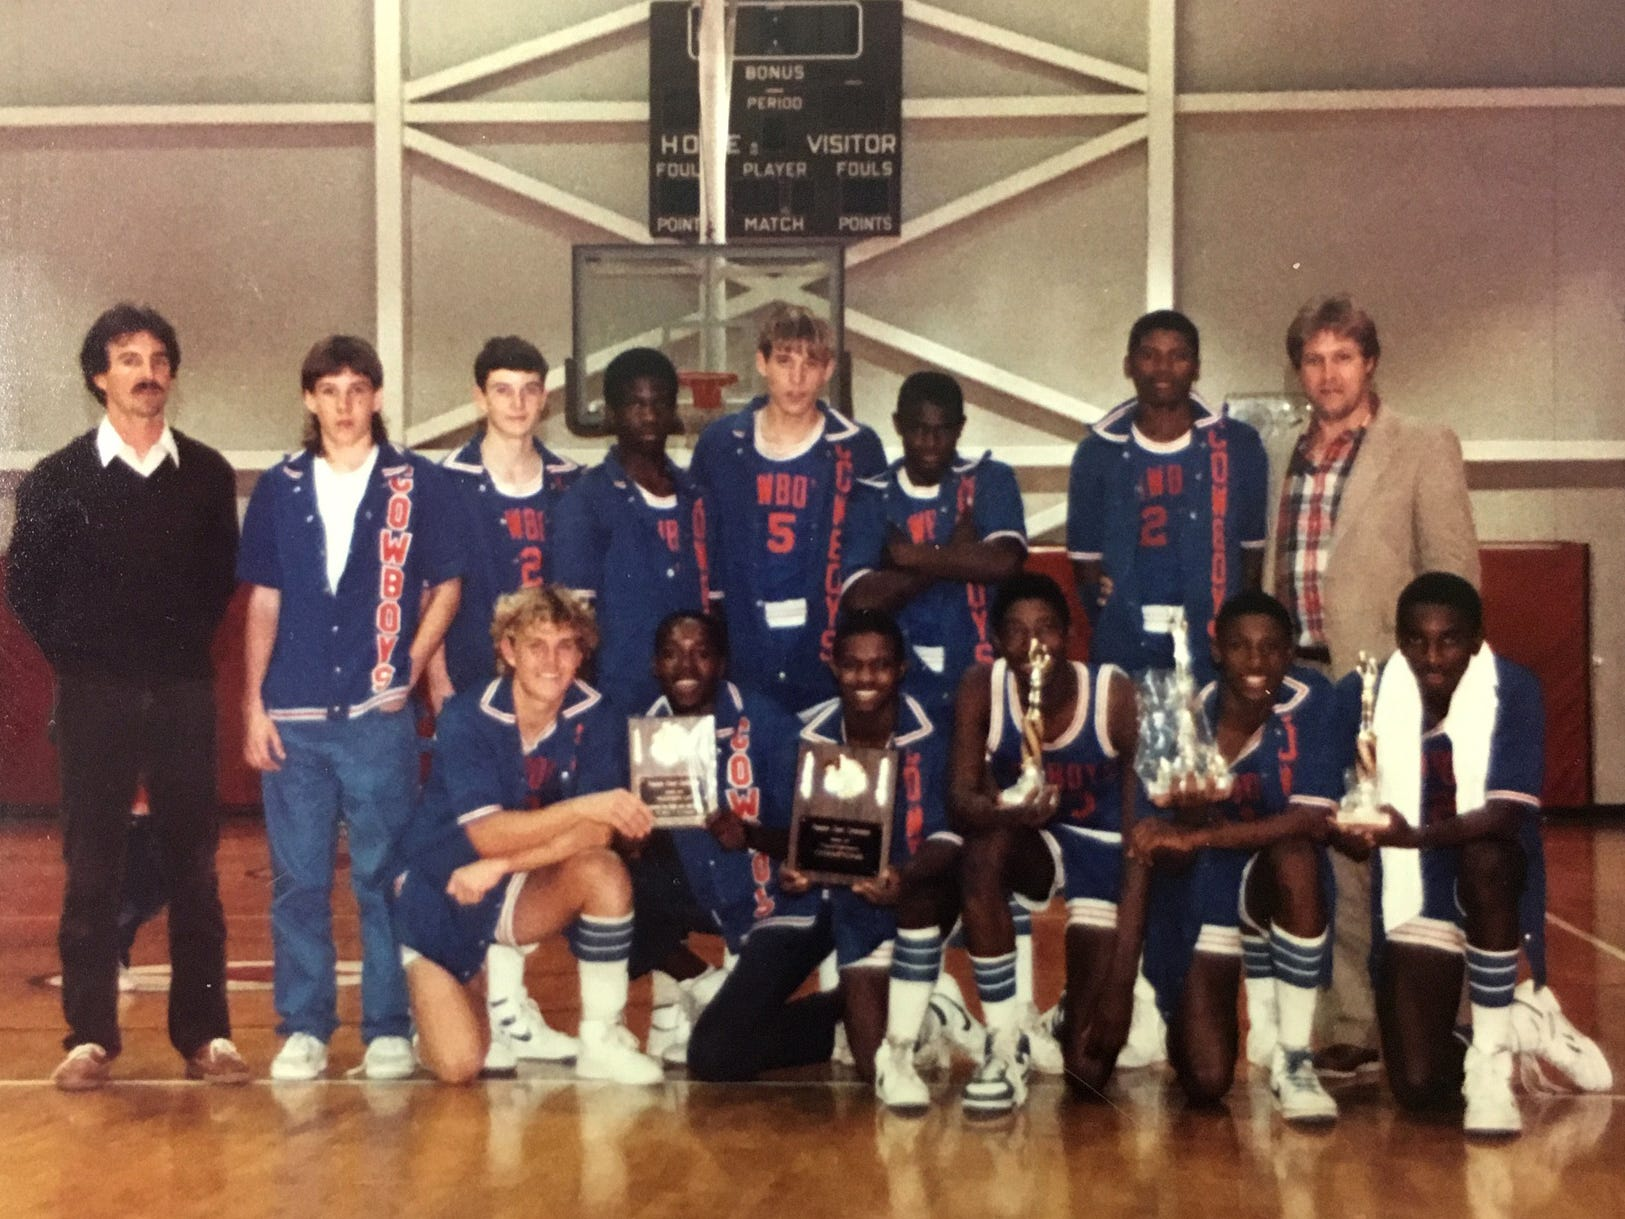 The Sebastian River Middle Junior High School basketball team pose for a picture in a year when they were Treasure Coast Conference tournament champions. Front, row from left: David Spalding, William Dawkins, Sivinti Ross, Roosevelt Jones, Demond Hinton, Octavius Jones. Back row from left: Coach Scott Adams, Sean Dunn, Jim Hulse, Robert Monroe, Wayne Everhart, Tyree Ross, Robert Pressley, Asst. Coach David Lunsford. The Sebastian River Junior High School team defeated Martin County and Vero Beach that year for the championship.